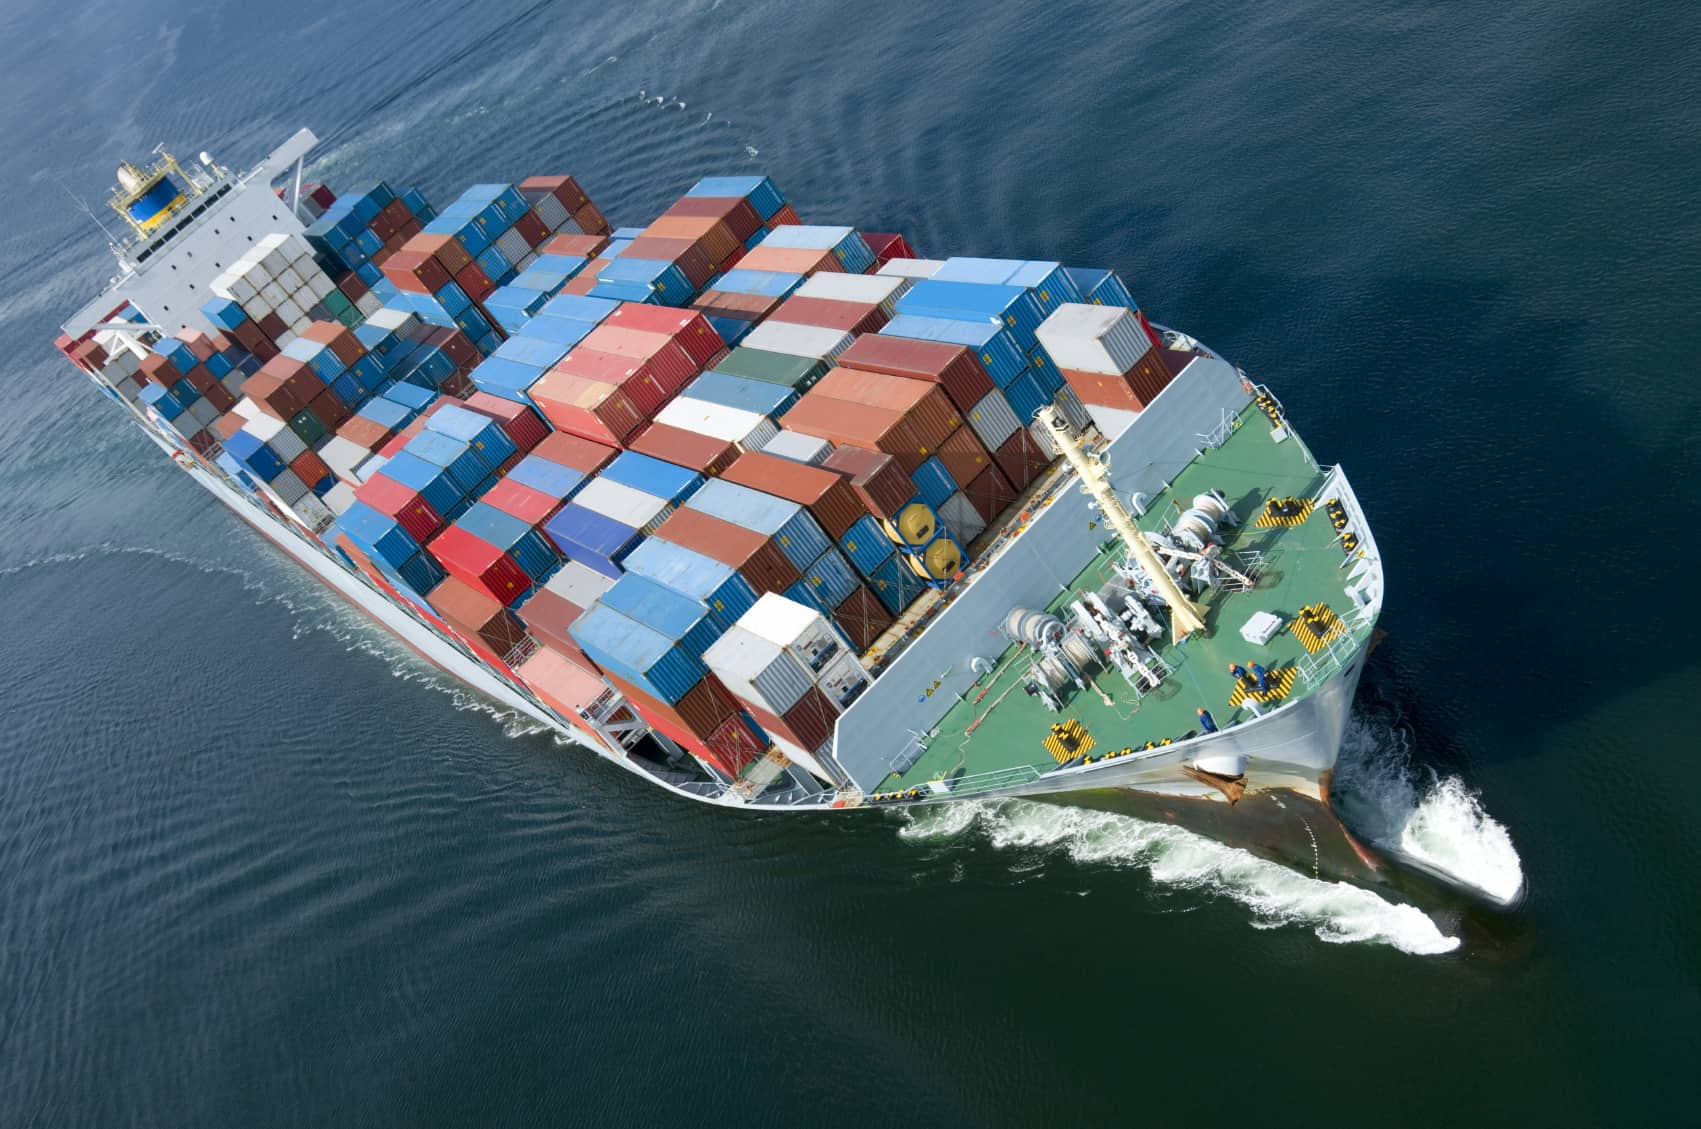 Global port industry grows steadily in Q1 2014